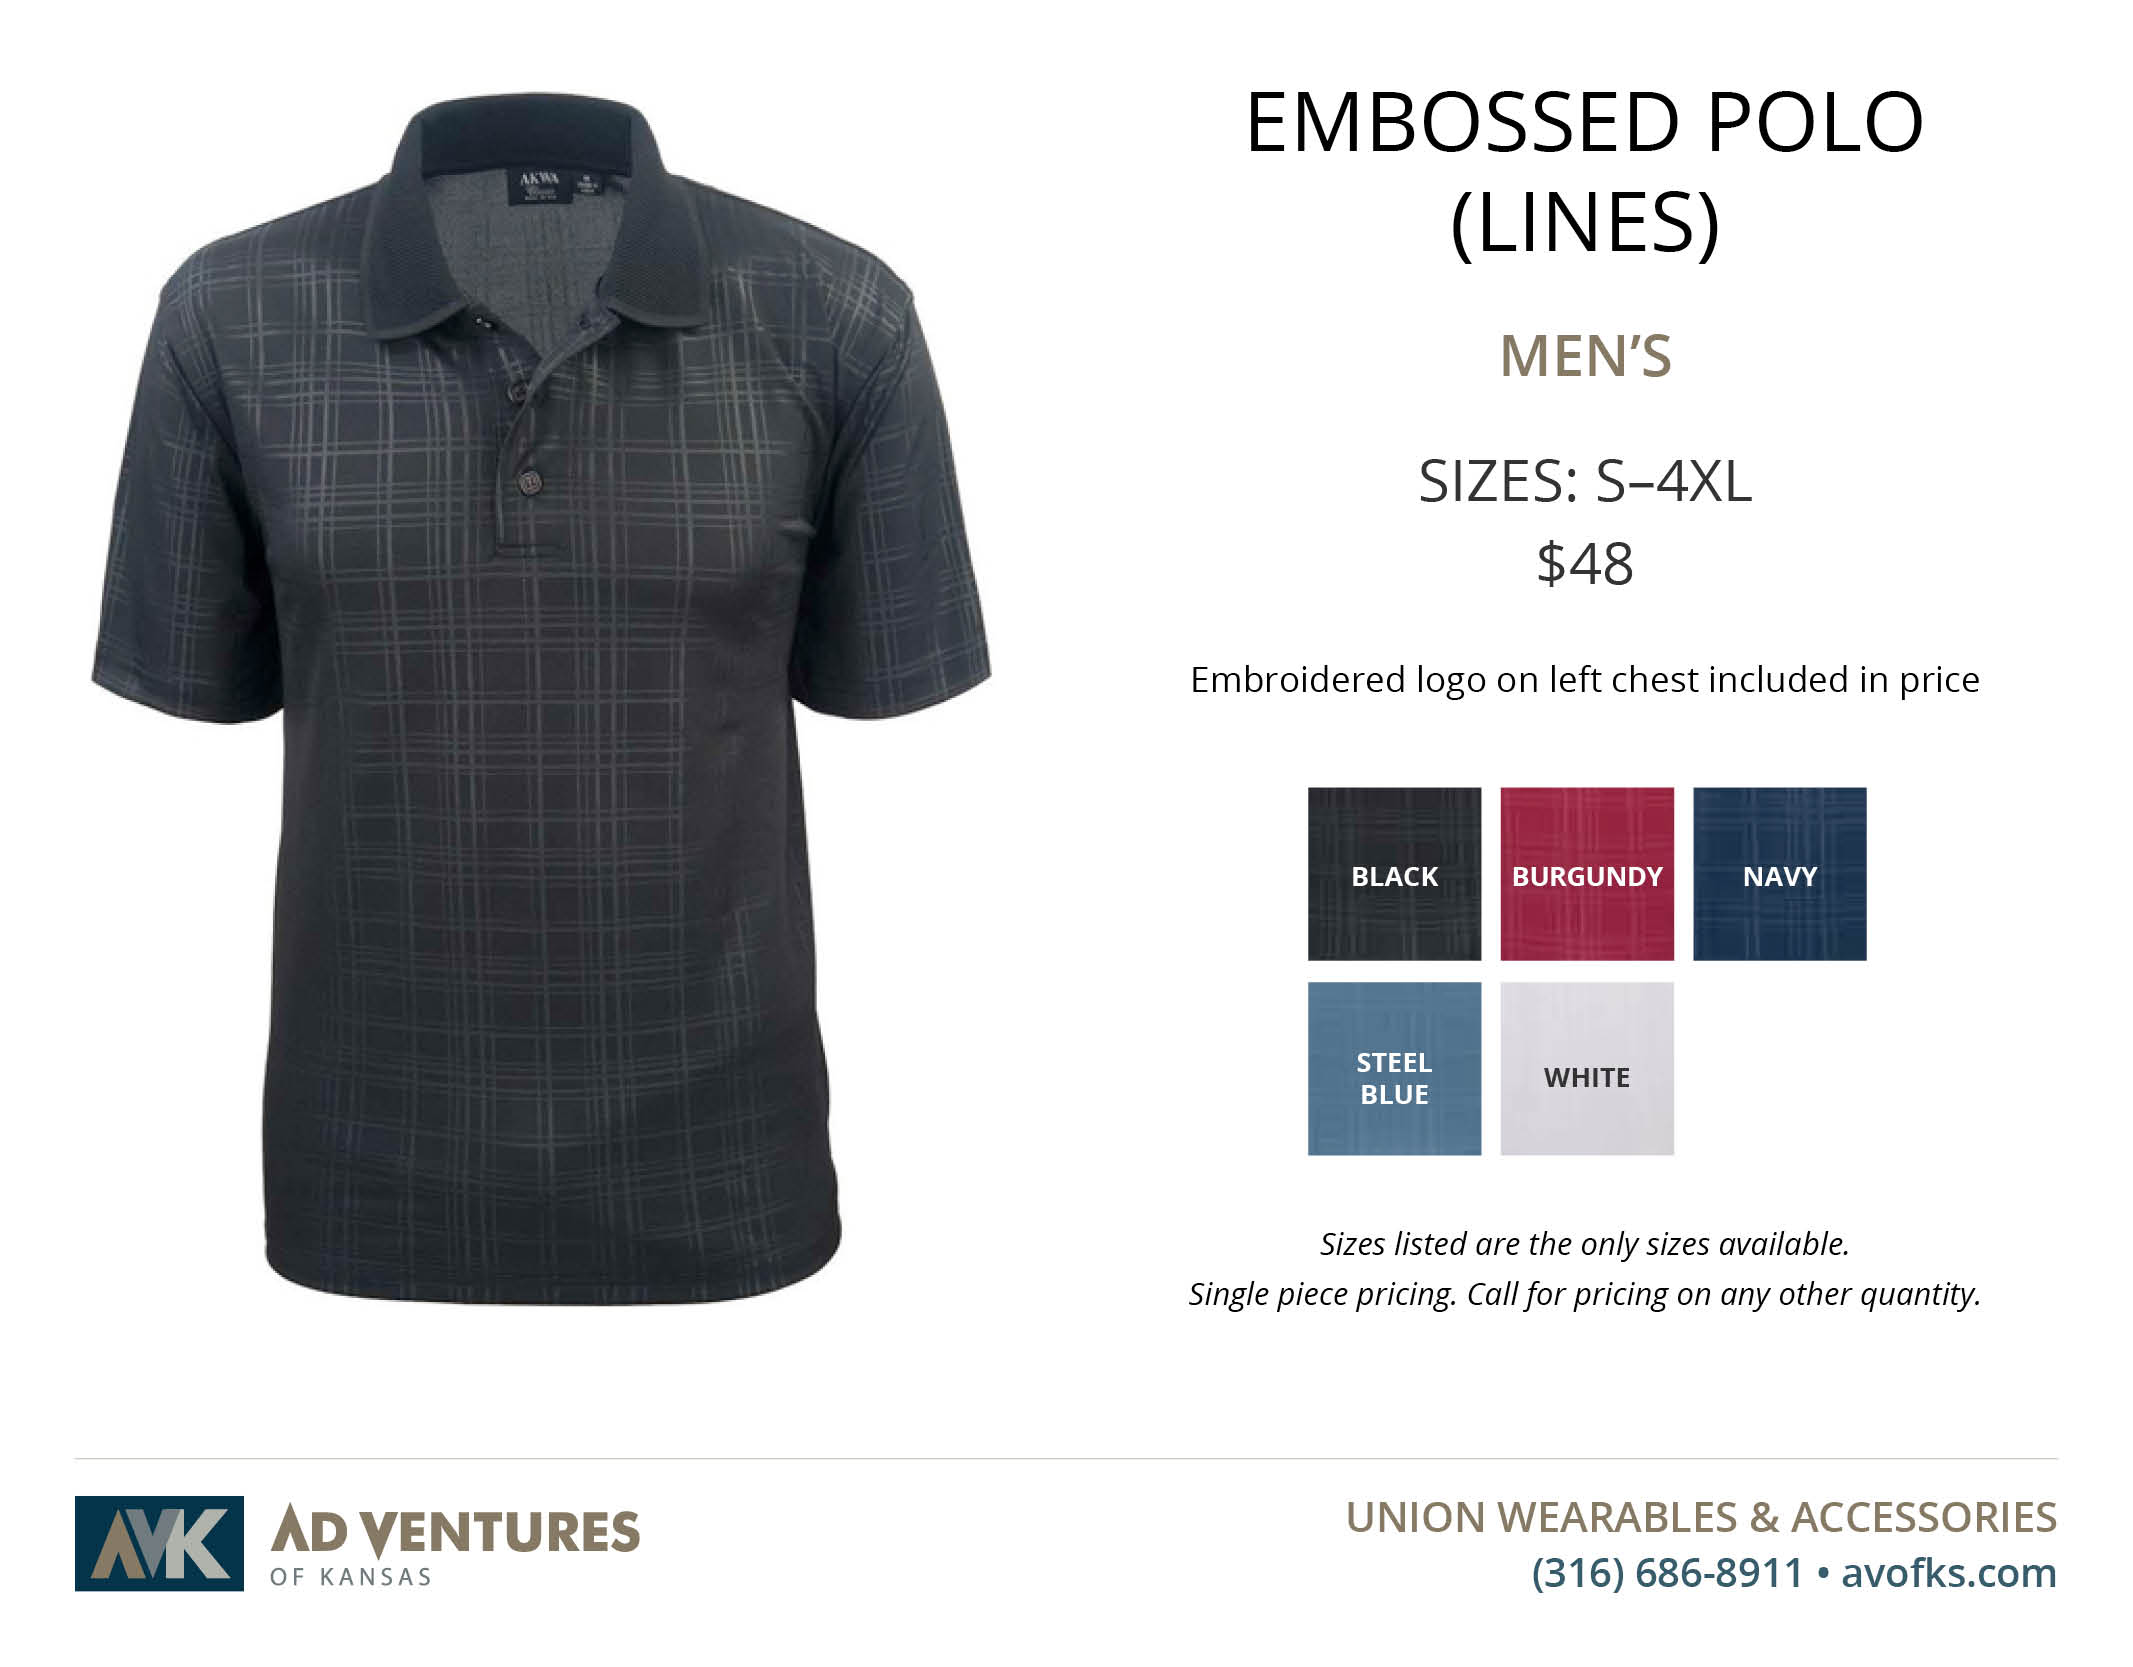 mens embossed polo lines